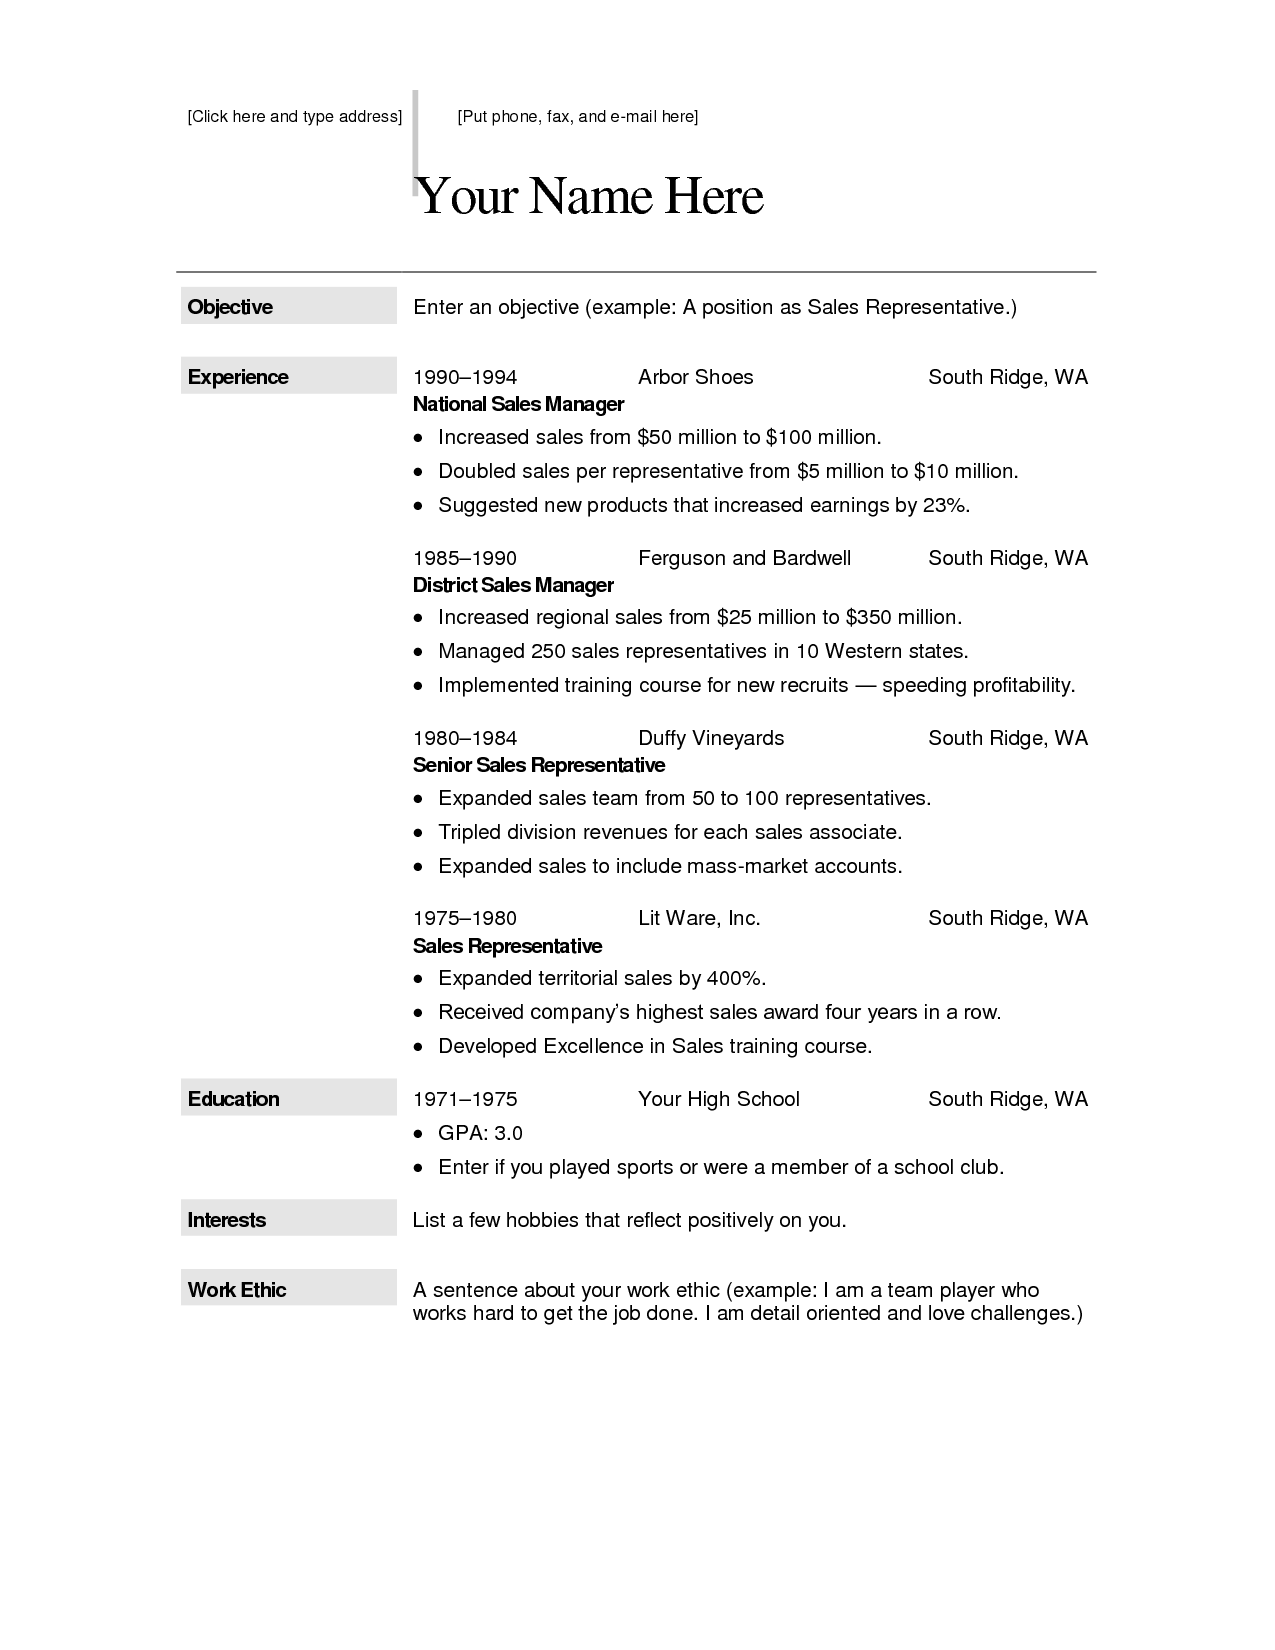 Resume Templates Free Free Creative Resume Templates For Macfree Creative Resume